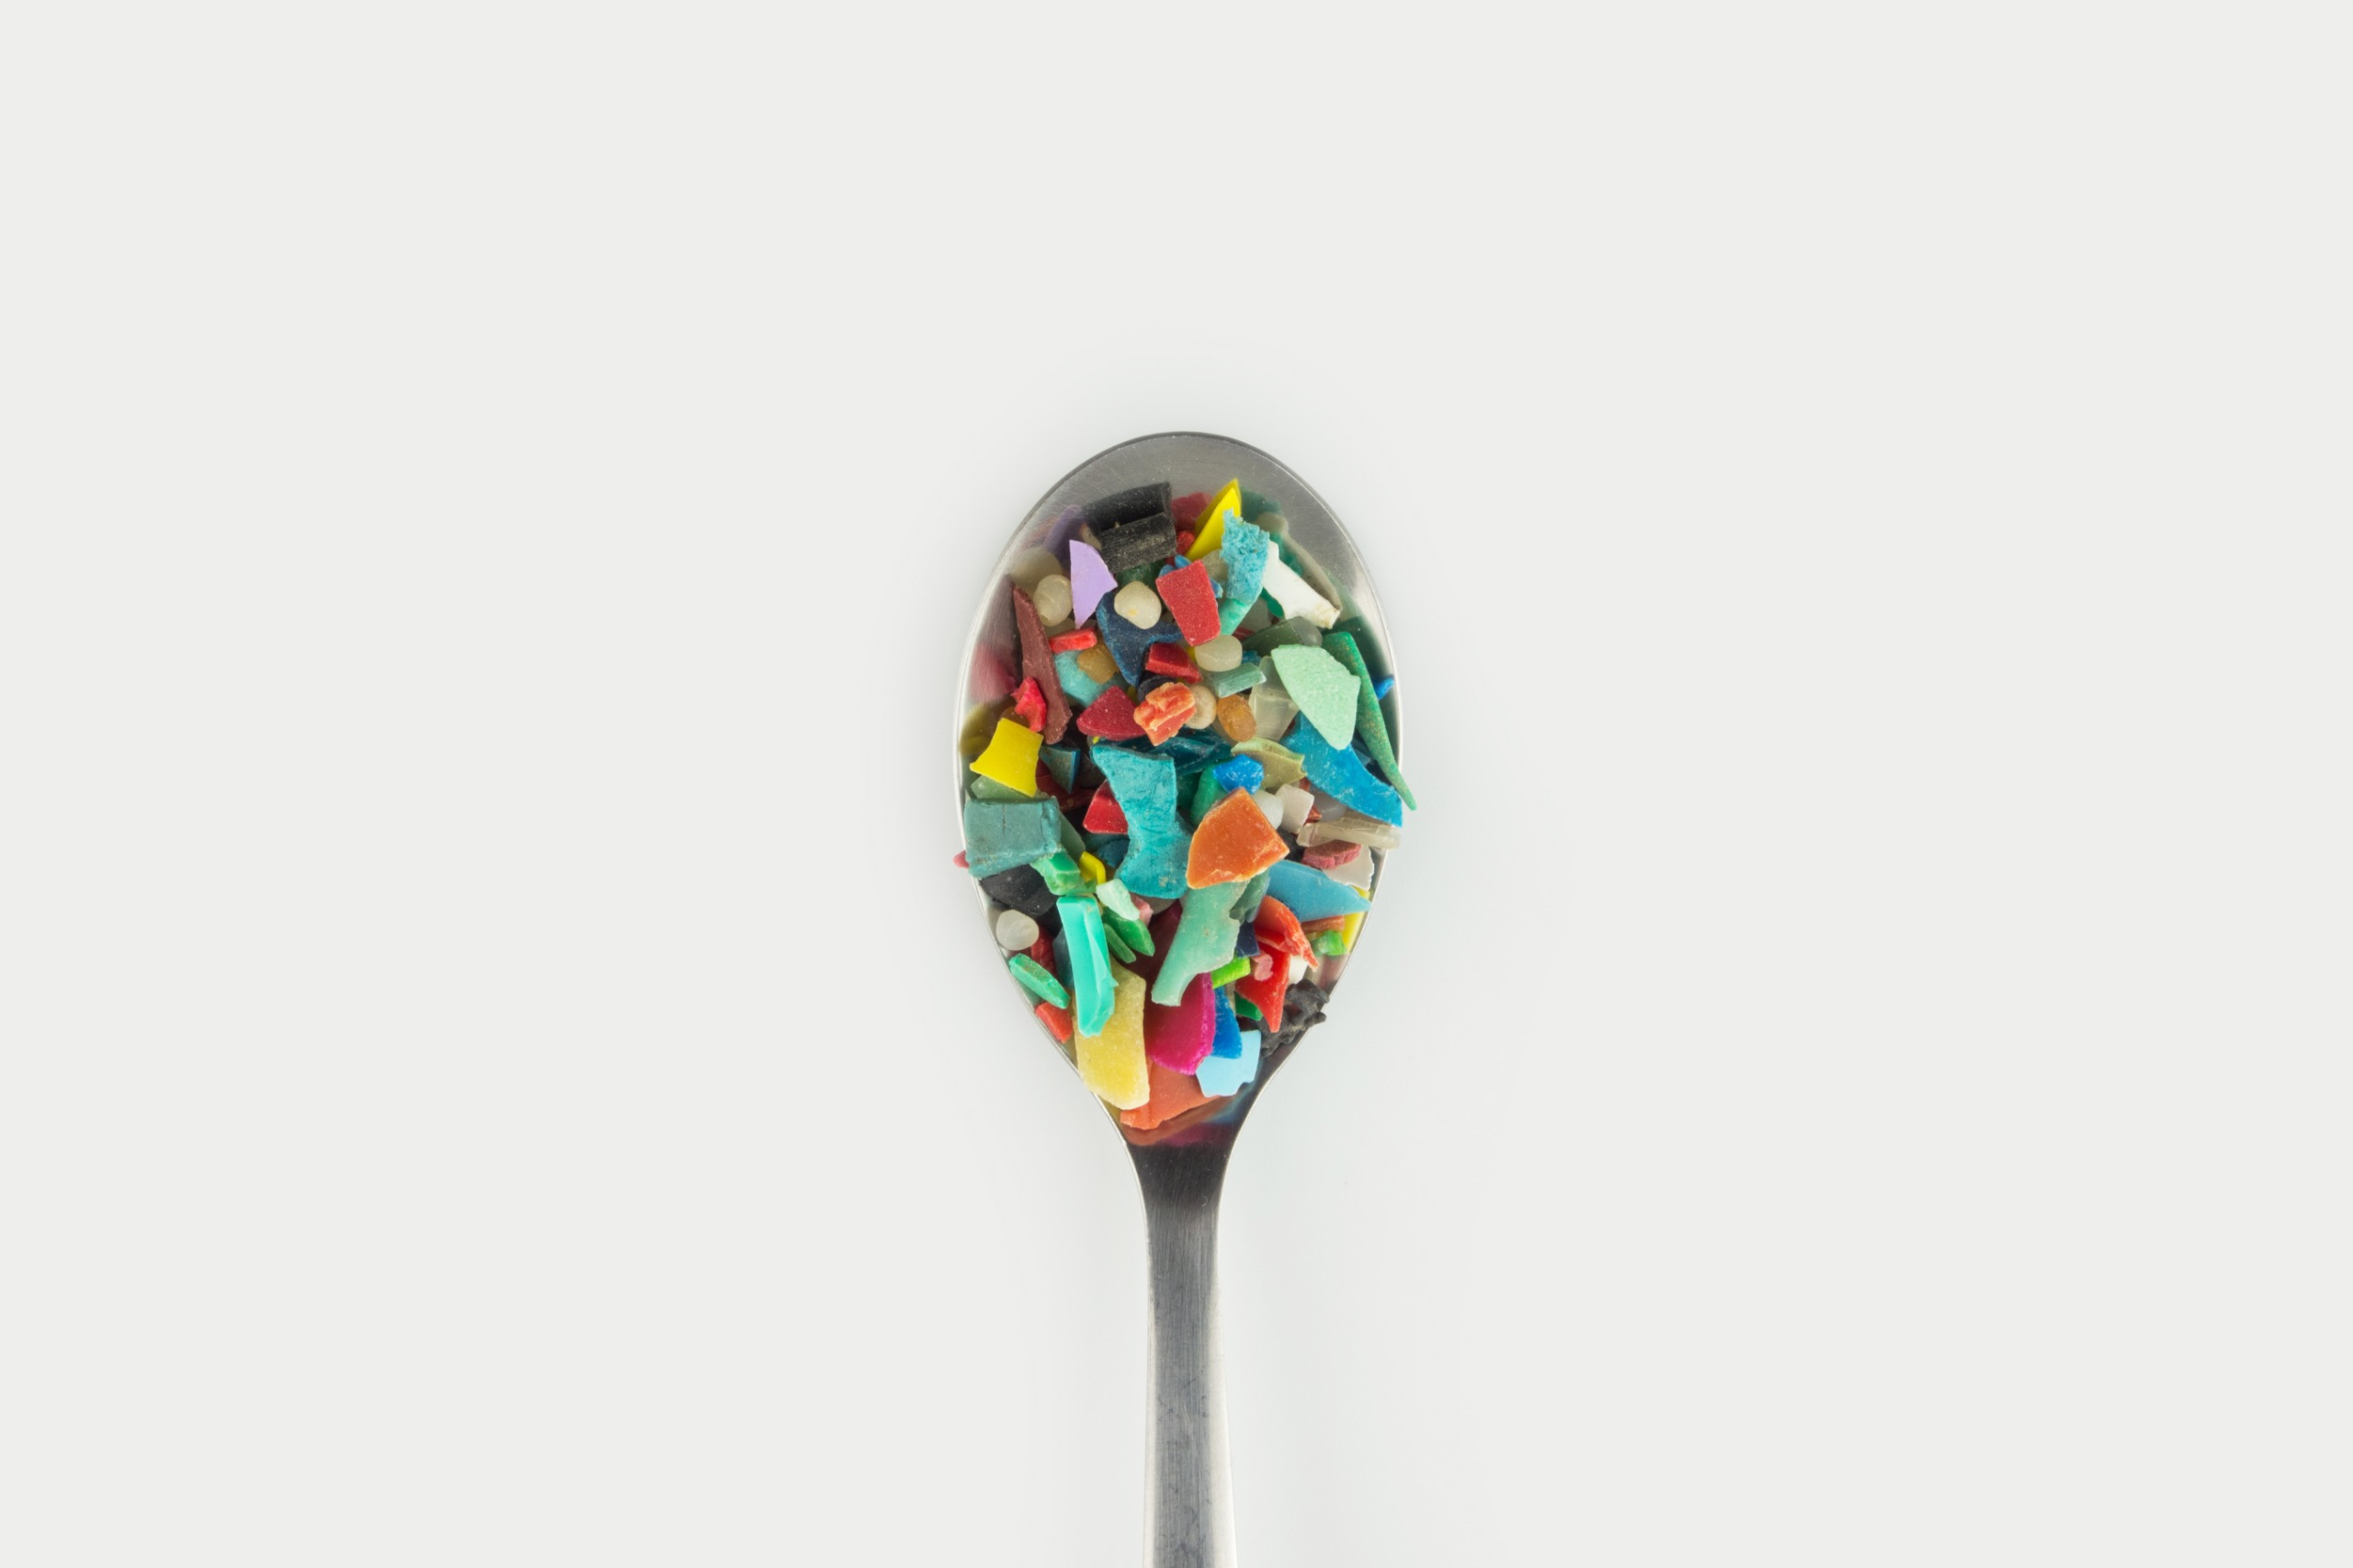 Teaspoon of micro plastics